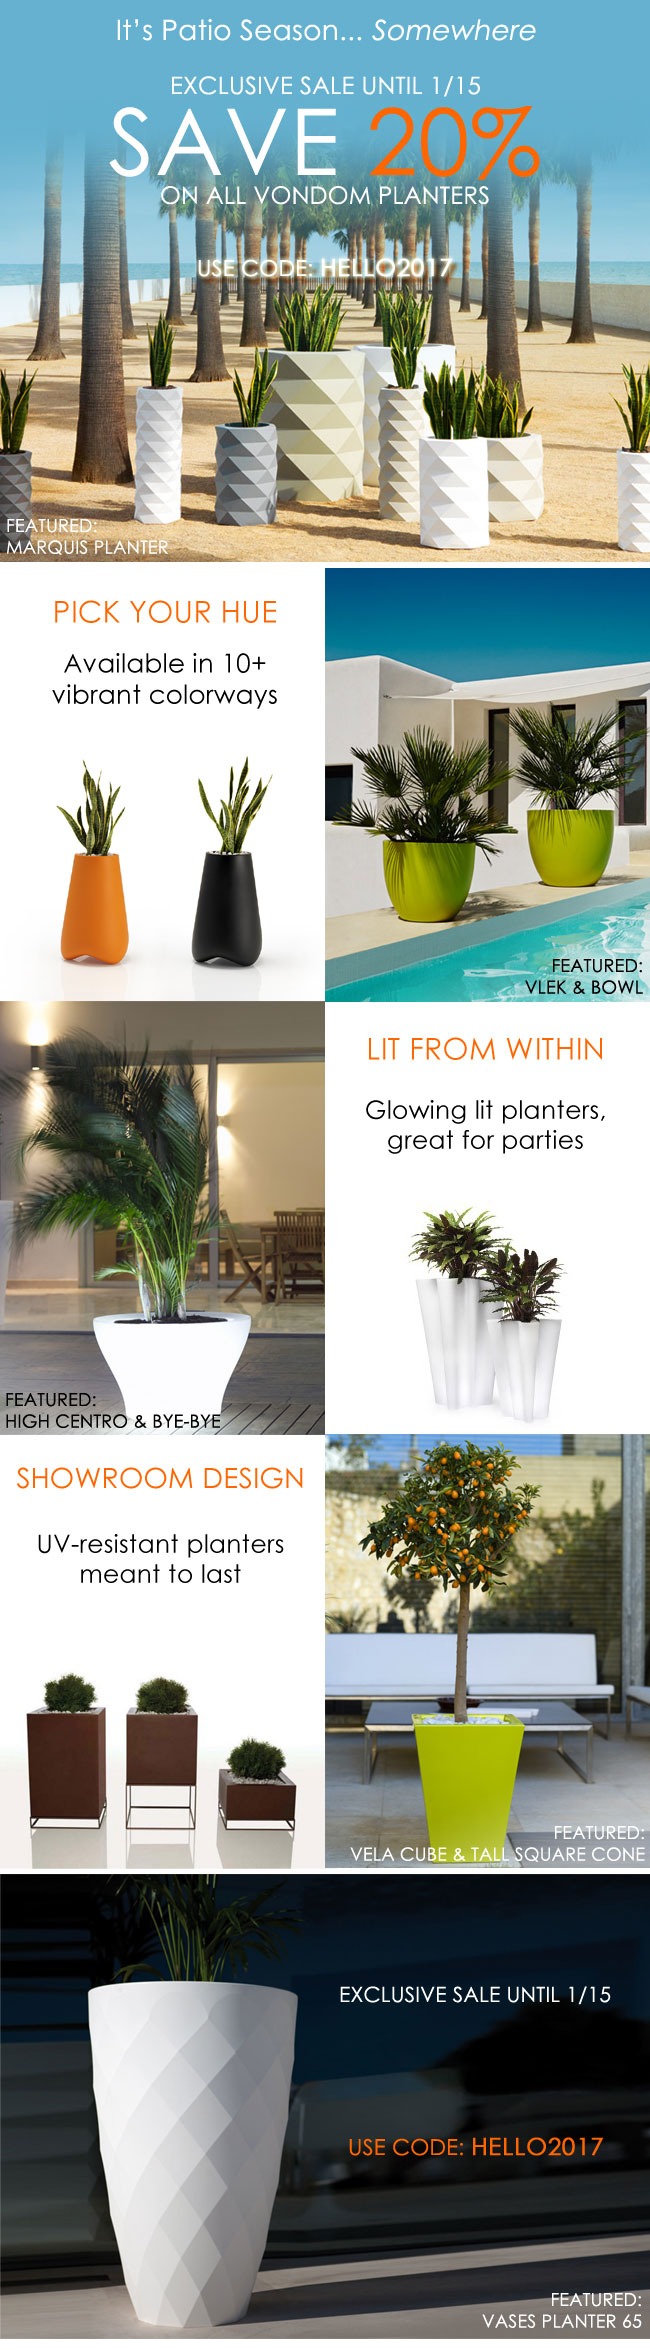 Exclusive vondom offer 20 off all vondom planters save big on modern elegant planters visit urbilis com to see full selection